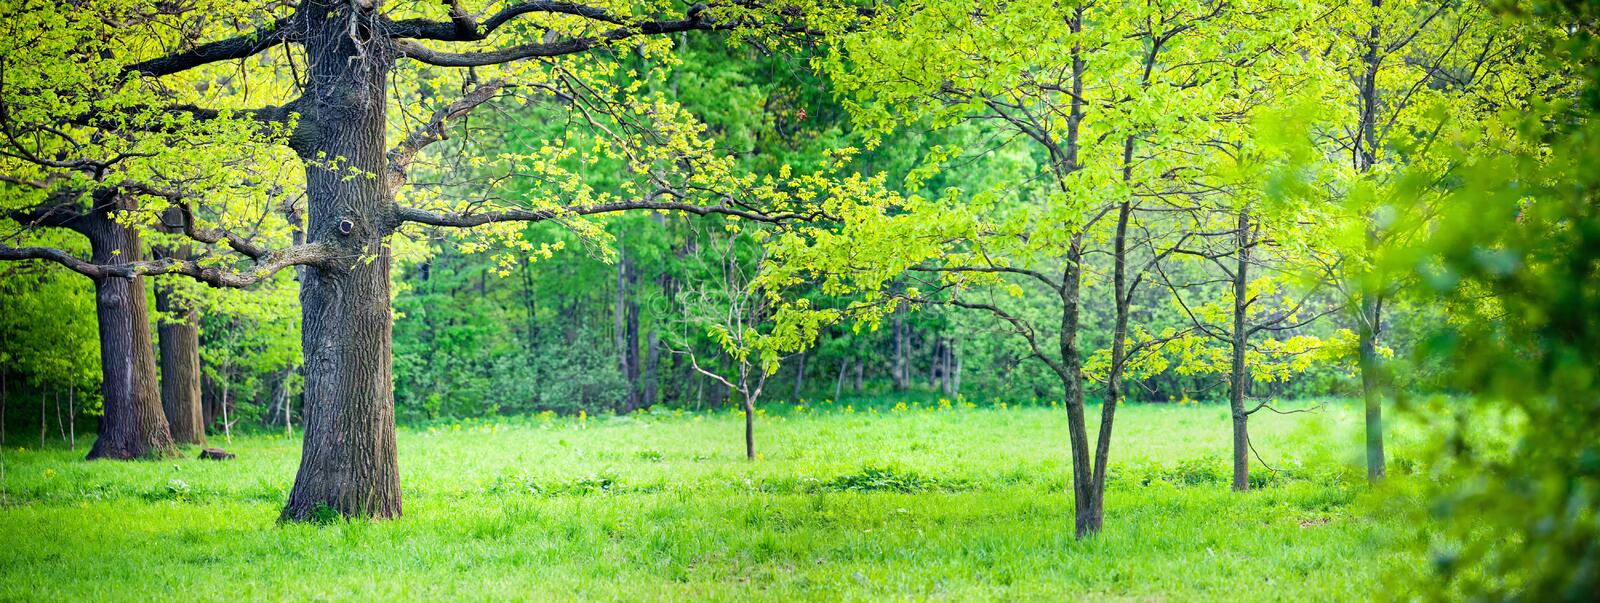 Spring park with oak royalty free stock photography